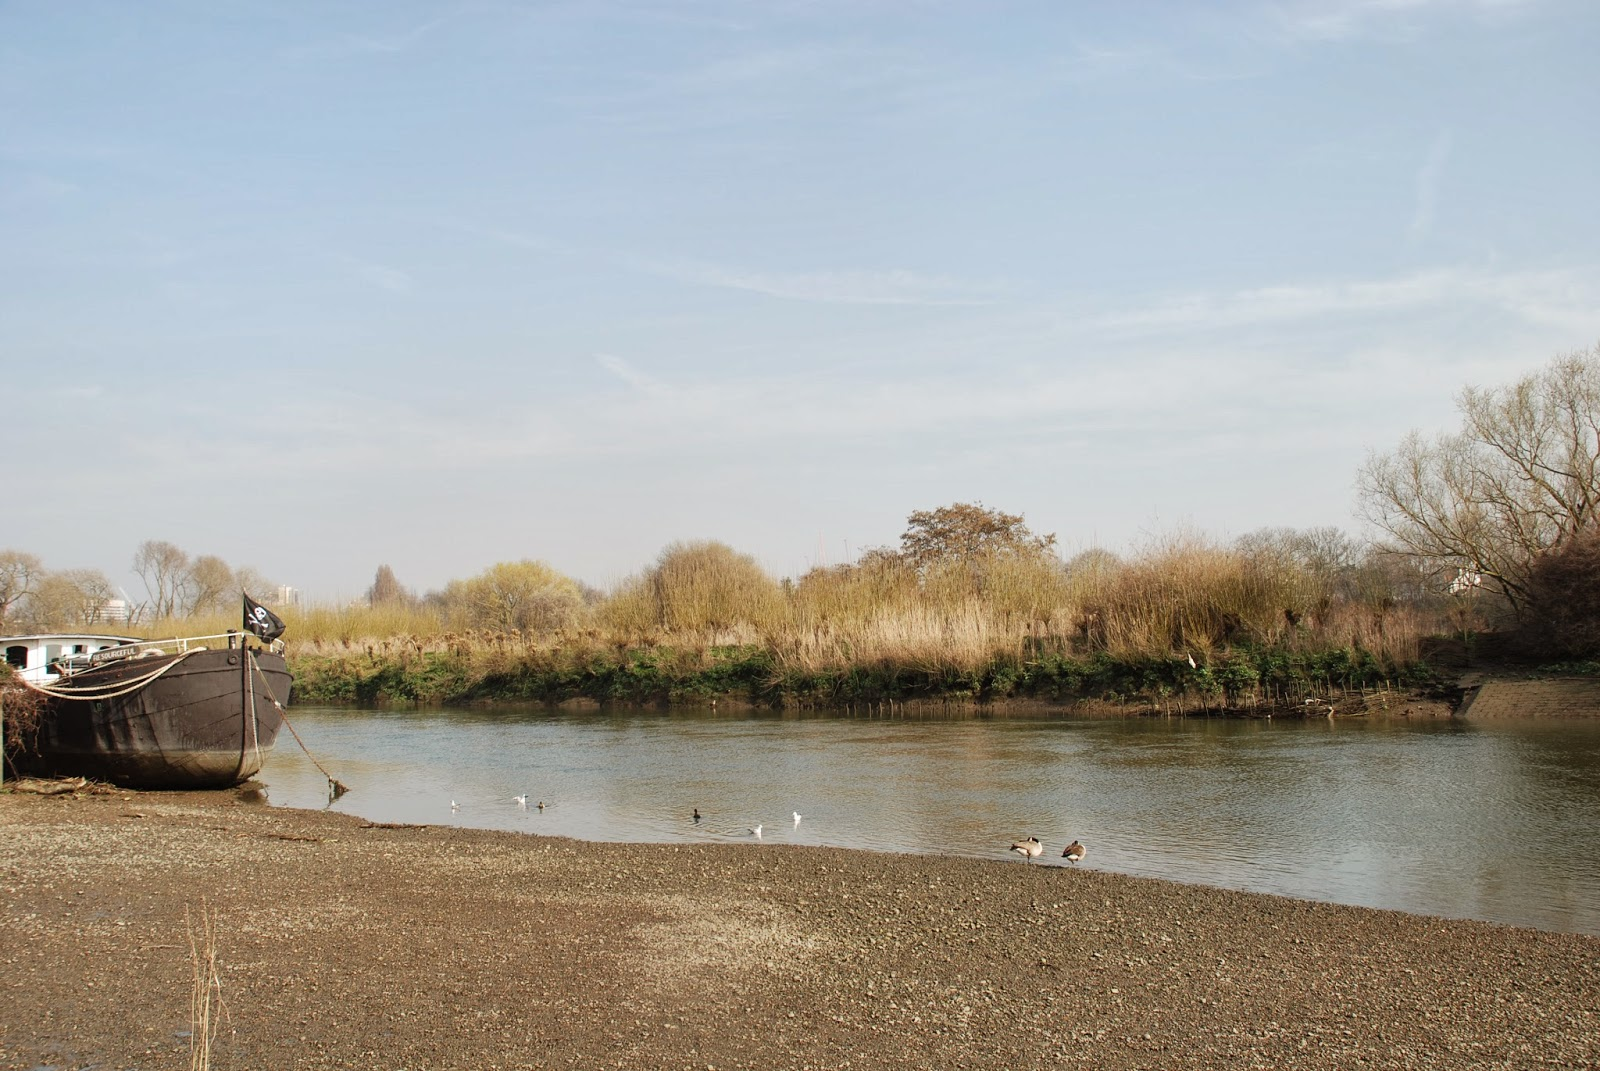 Best dog walks in West London: Part 2: Thames Tow Path Chiswick/ Hammersmith/ Barnes